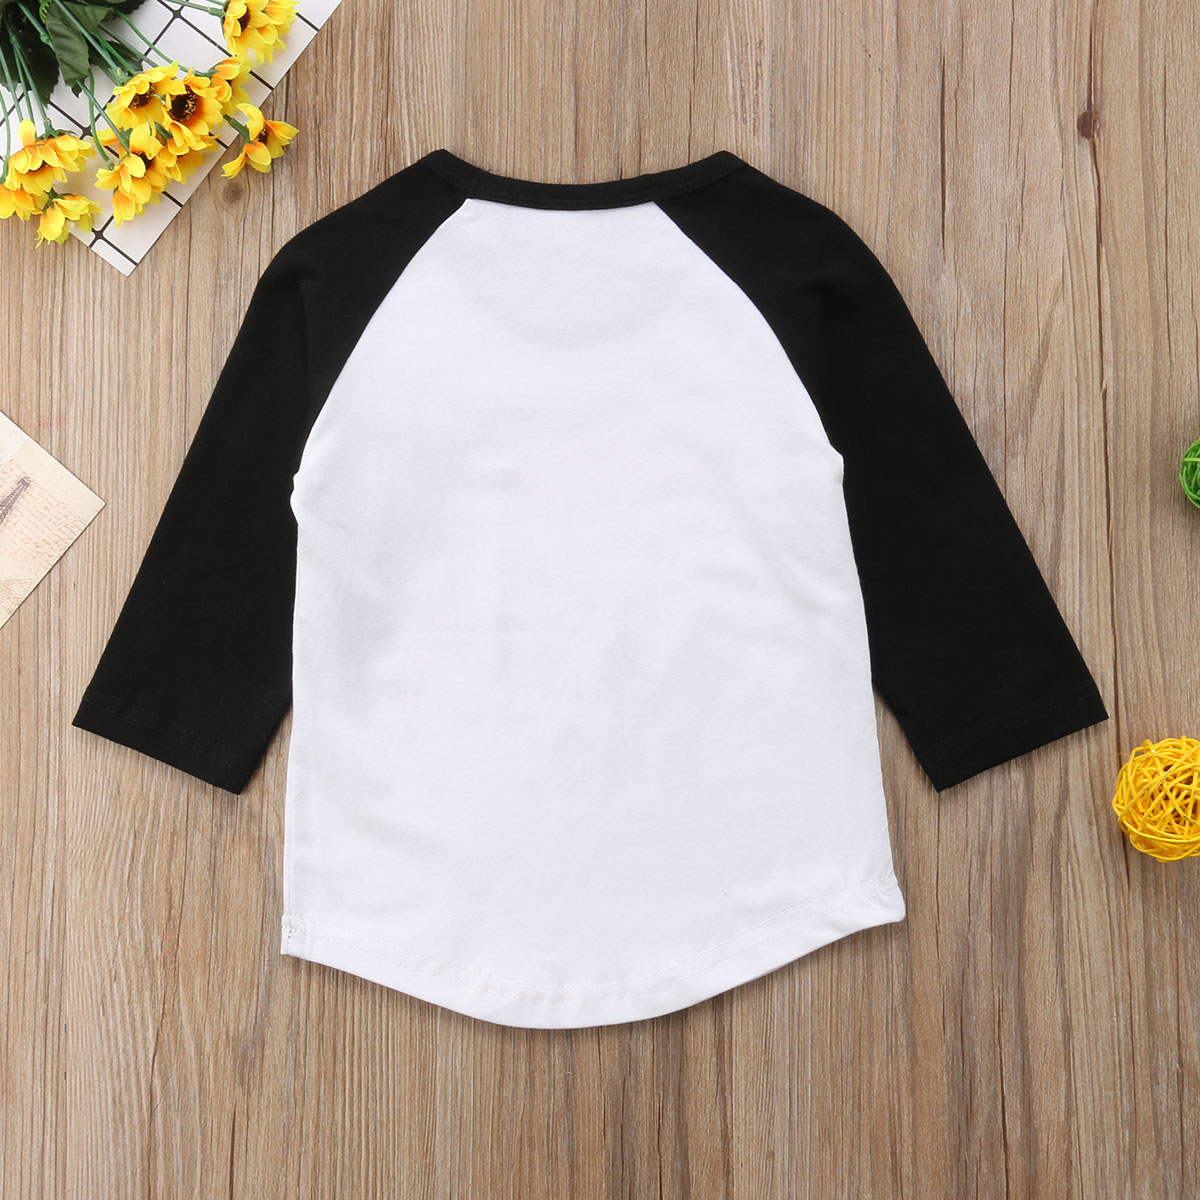 5da8e989316bb Baby Girls Boys Christmas Hat Print Raglan Long Sleeve Crew Neck T Shirt  Blouse Outfits-in T-Shirts from Mother   Kids on Aliexpress.com